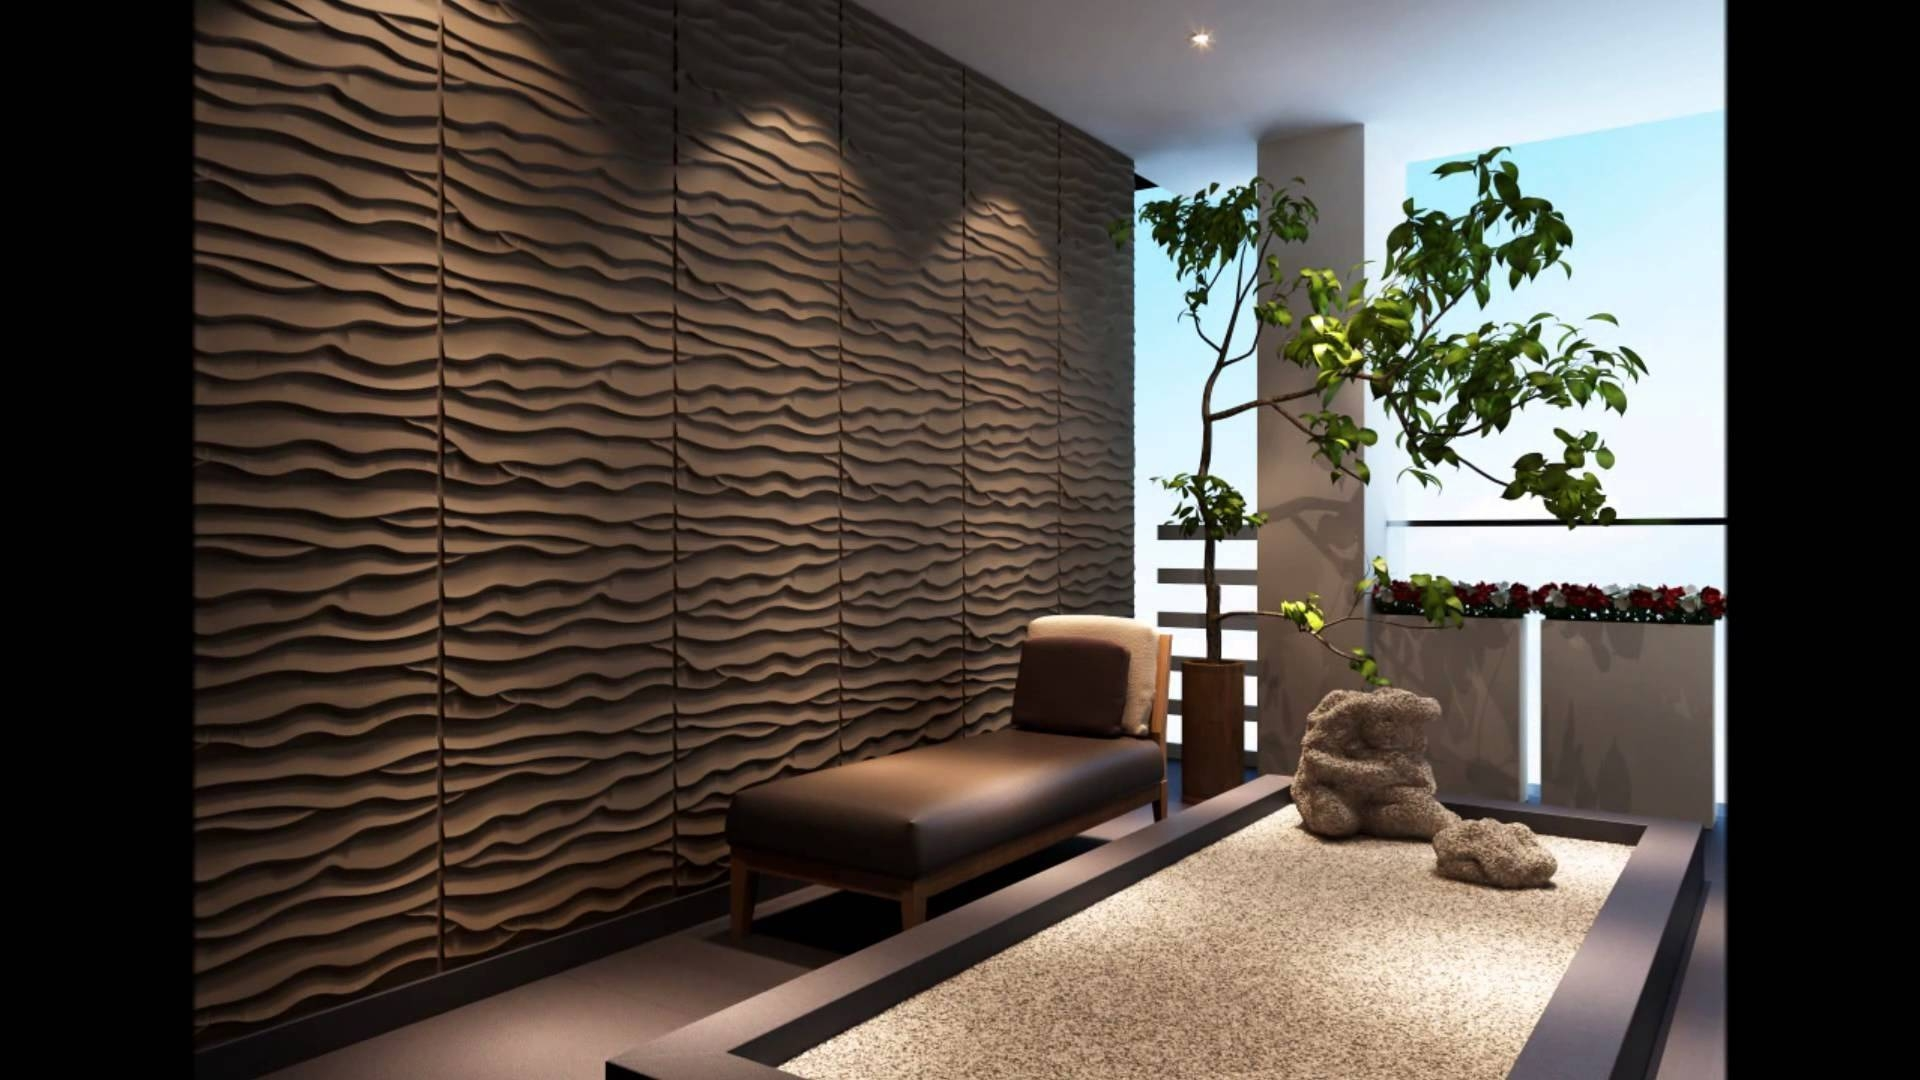 Unique 3d Wall Panels | About My Blog Throughout Latest Unique 3d Wall Art (View 10 of 20)